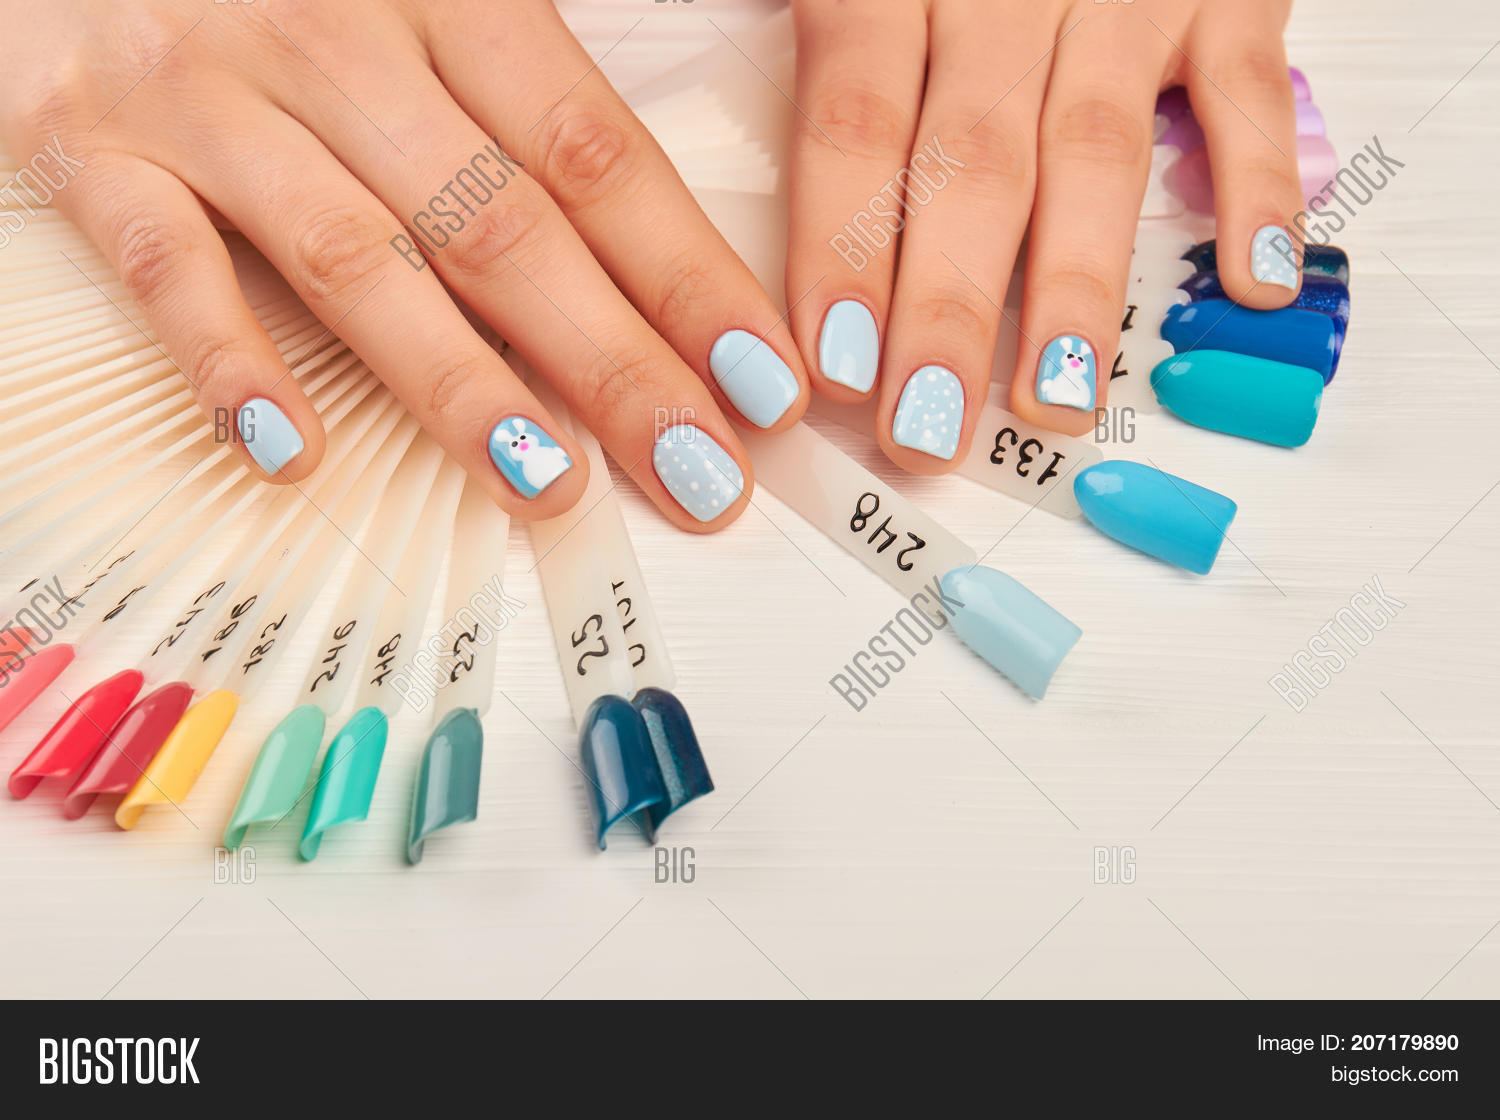 Manicured Hands Nail Image & Photo (Free Trial) | Bigstock